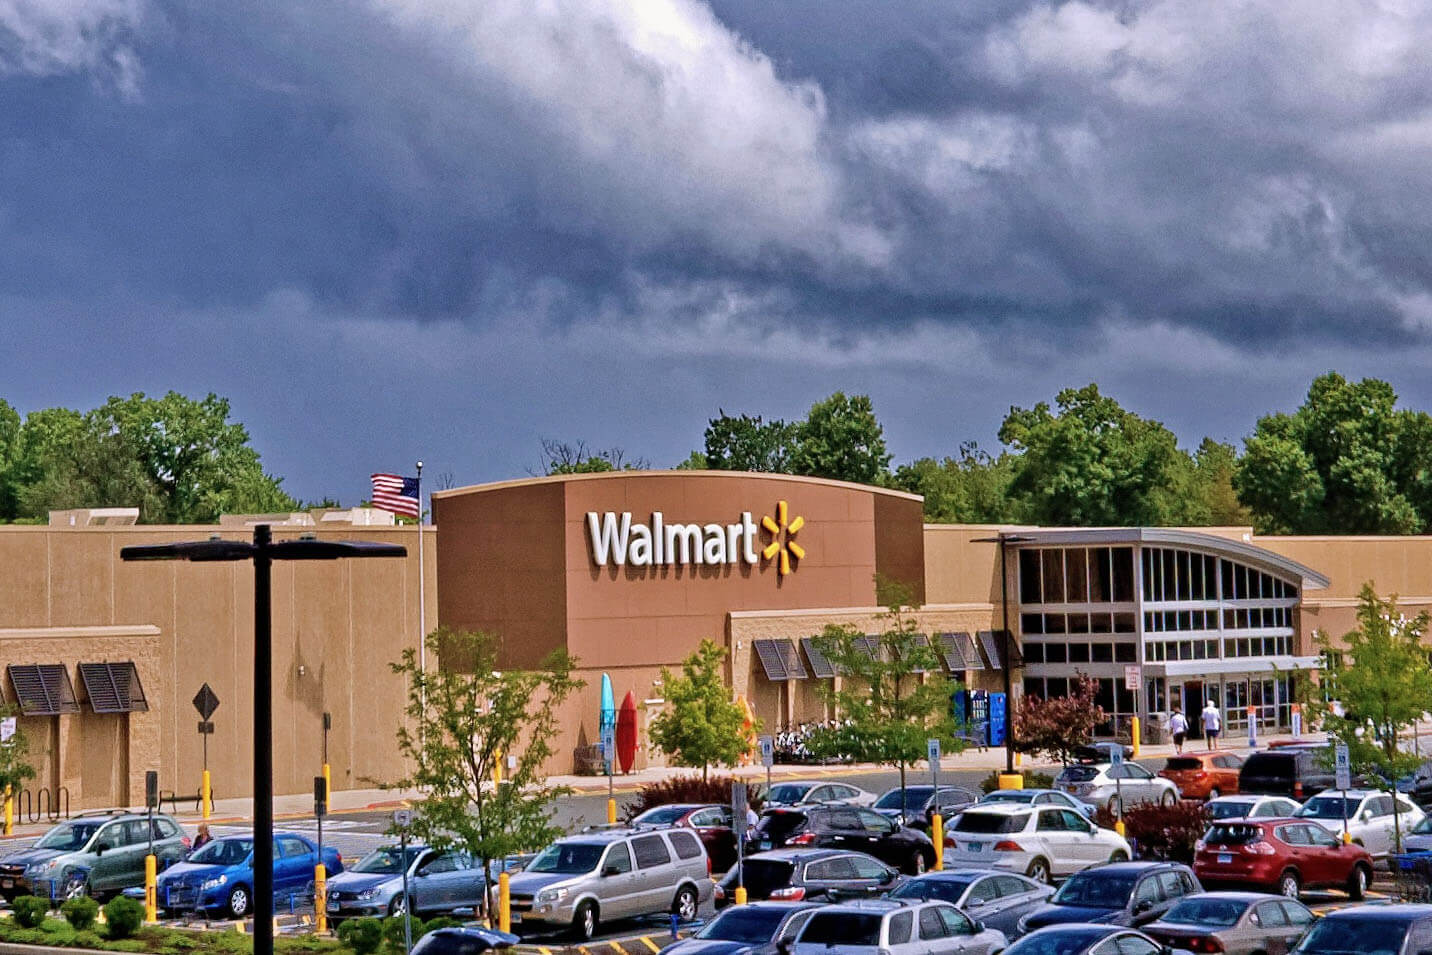 image of walmart retail store and parking lot